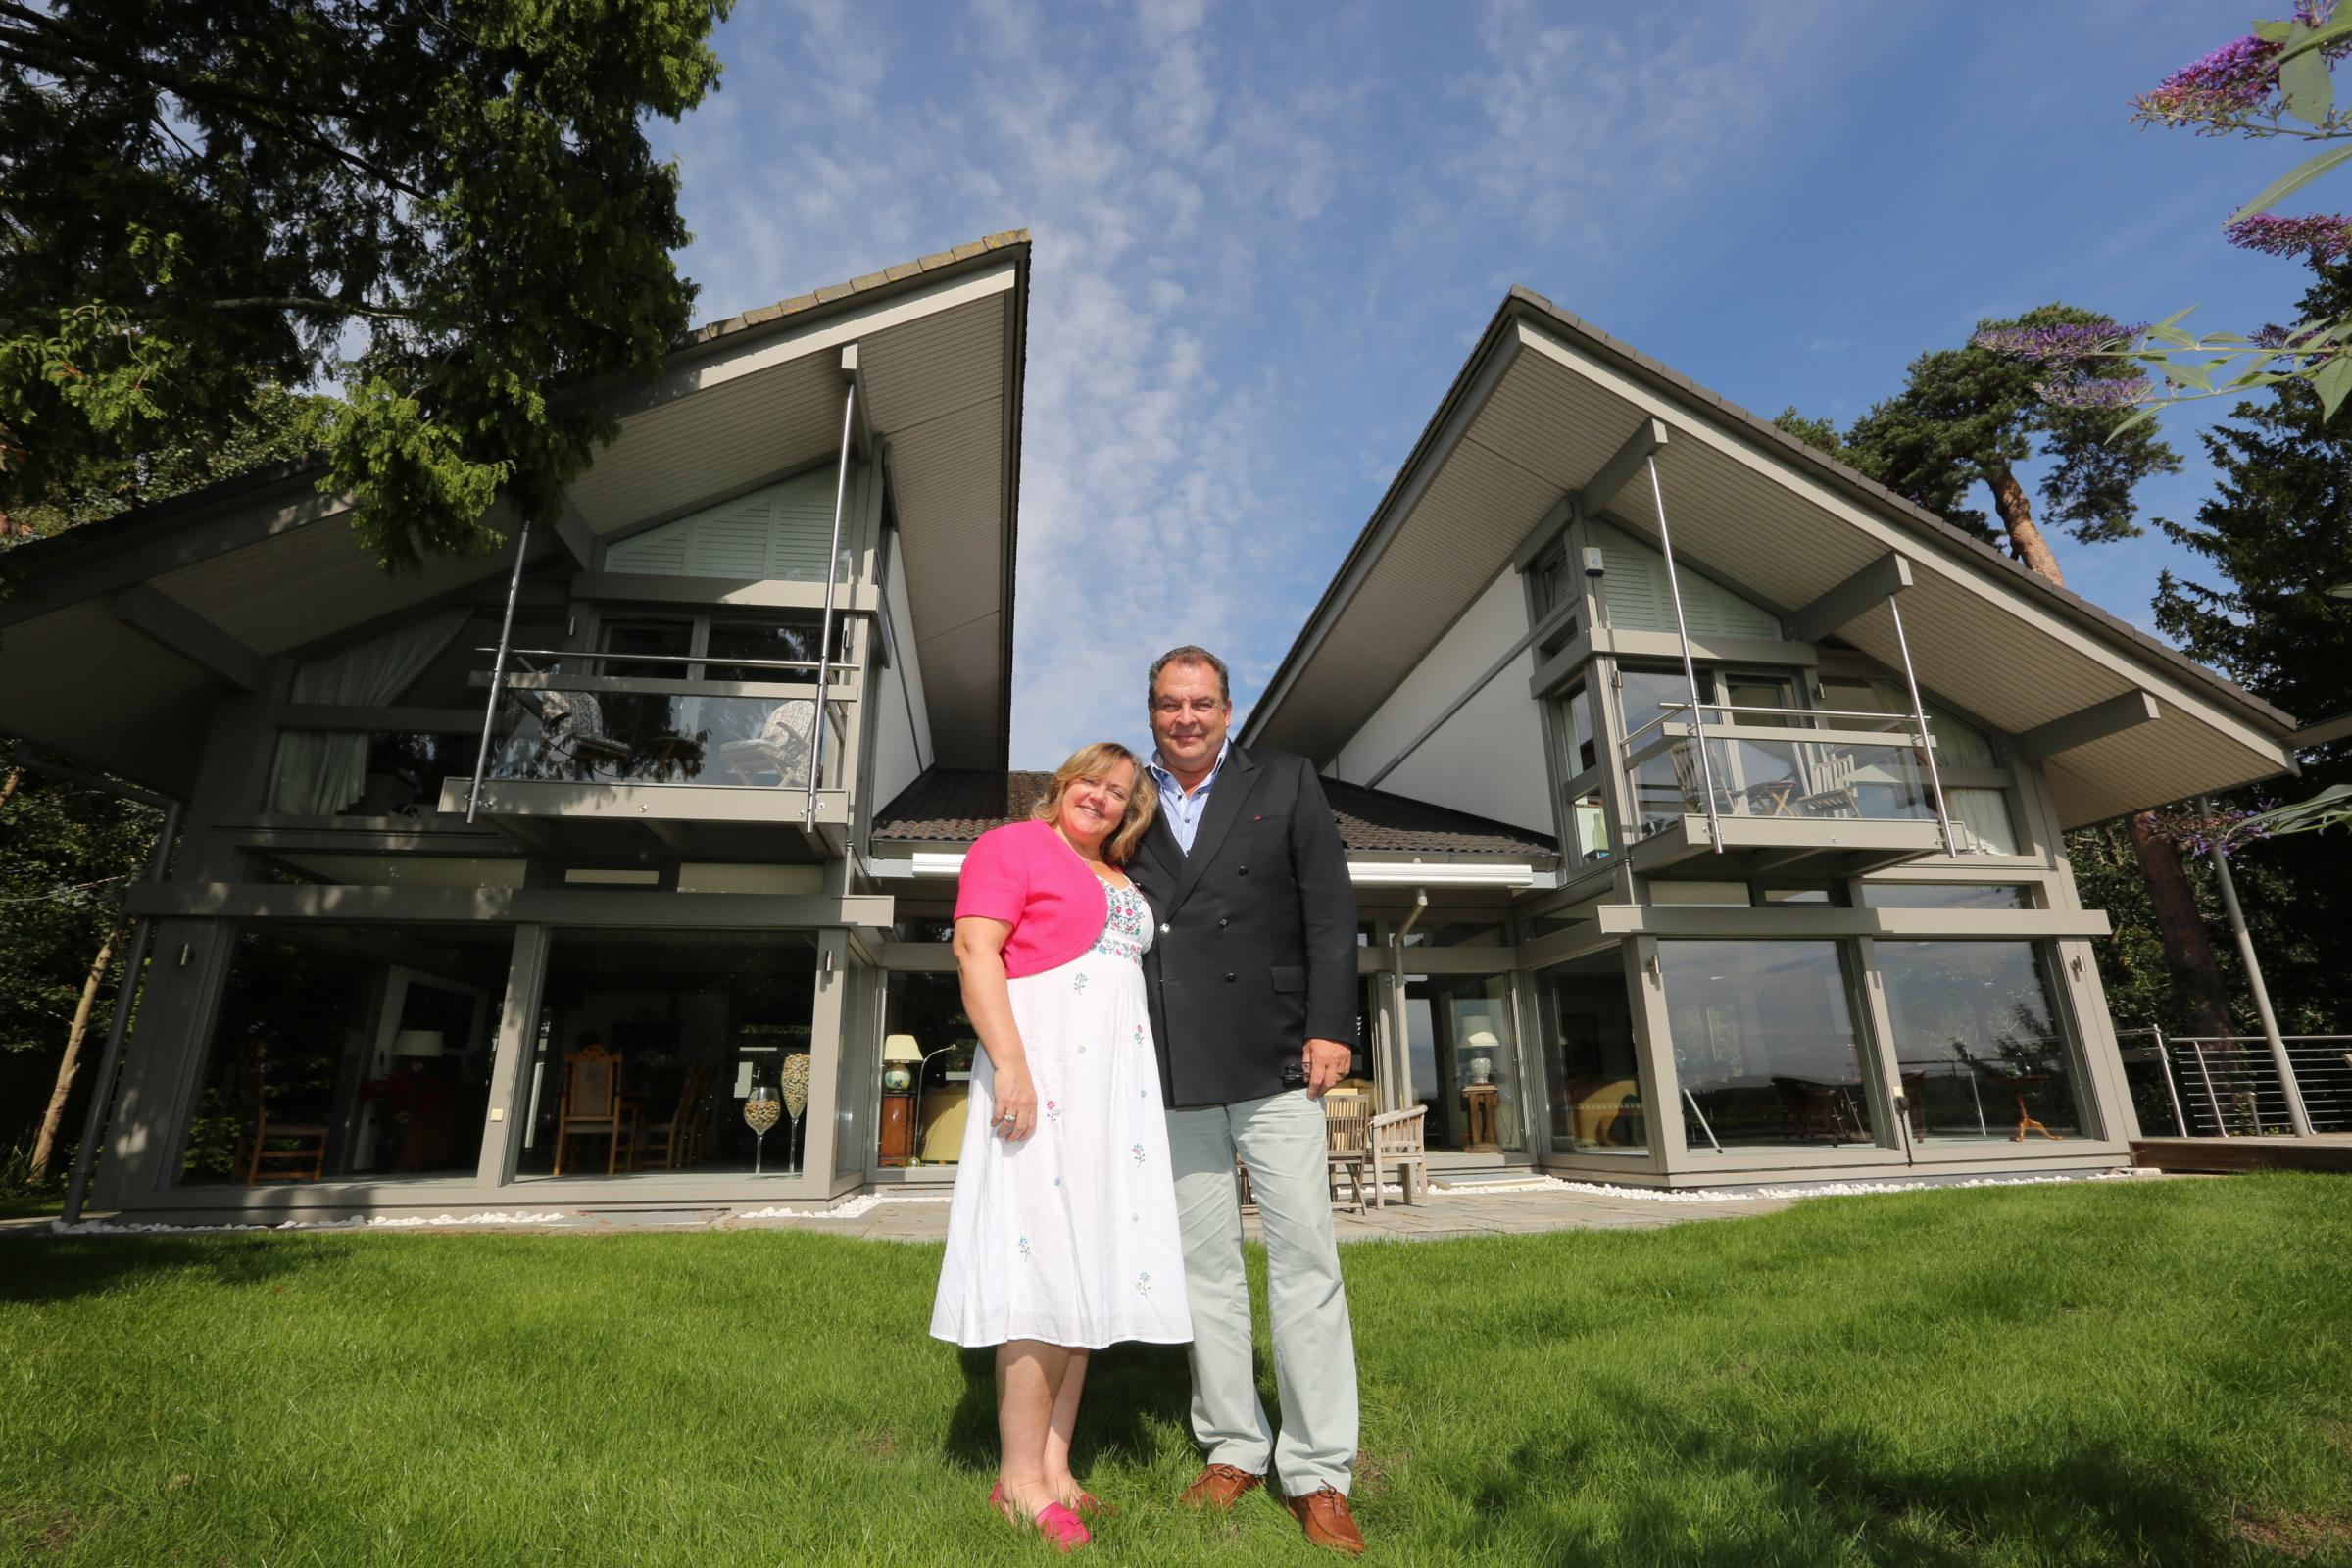 Mark and Sharon Beresford who are selling their home in Avon Castle, Ringwood, through a competition